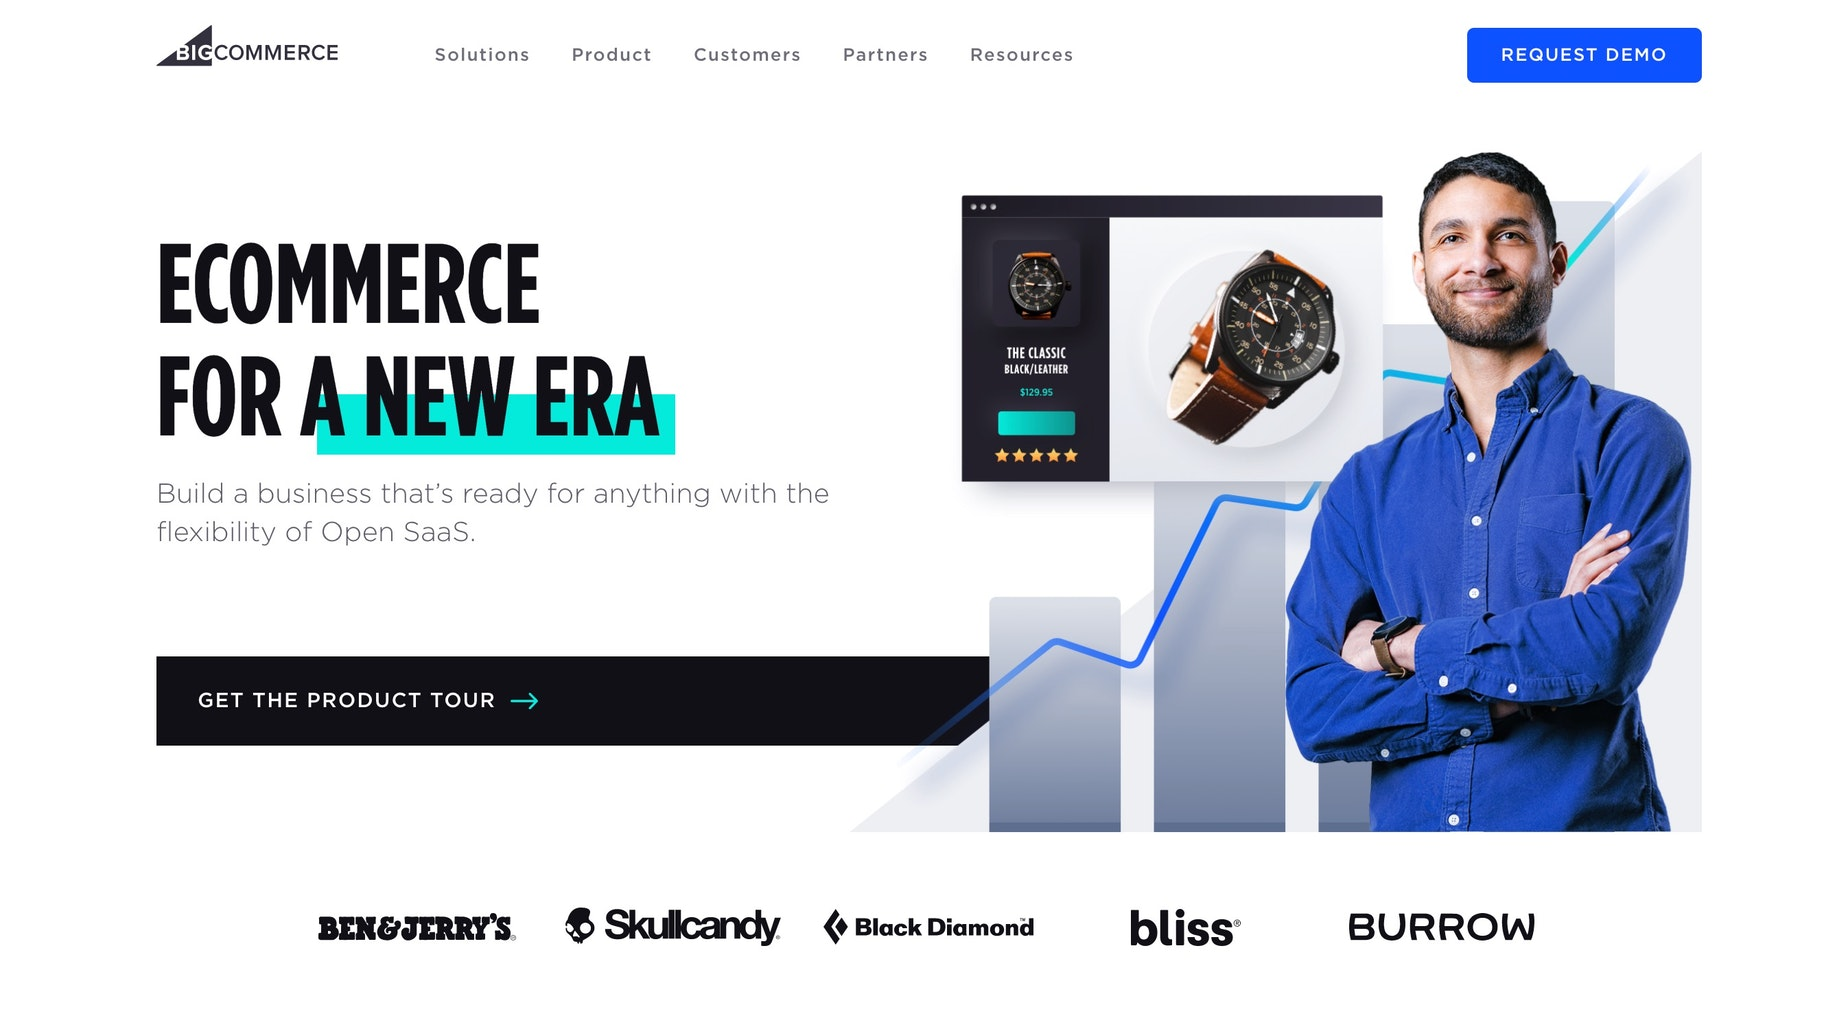 Shopify competitors for larger businesses: BigCommerce